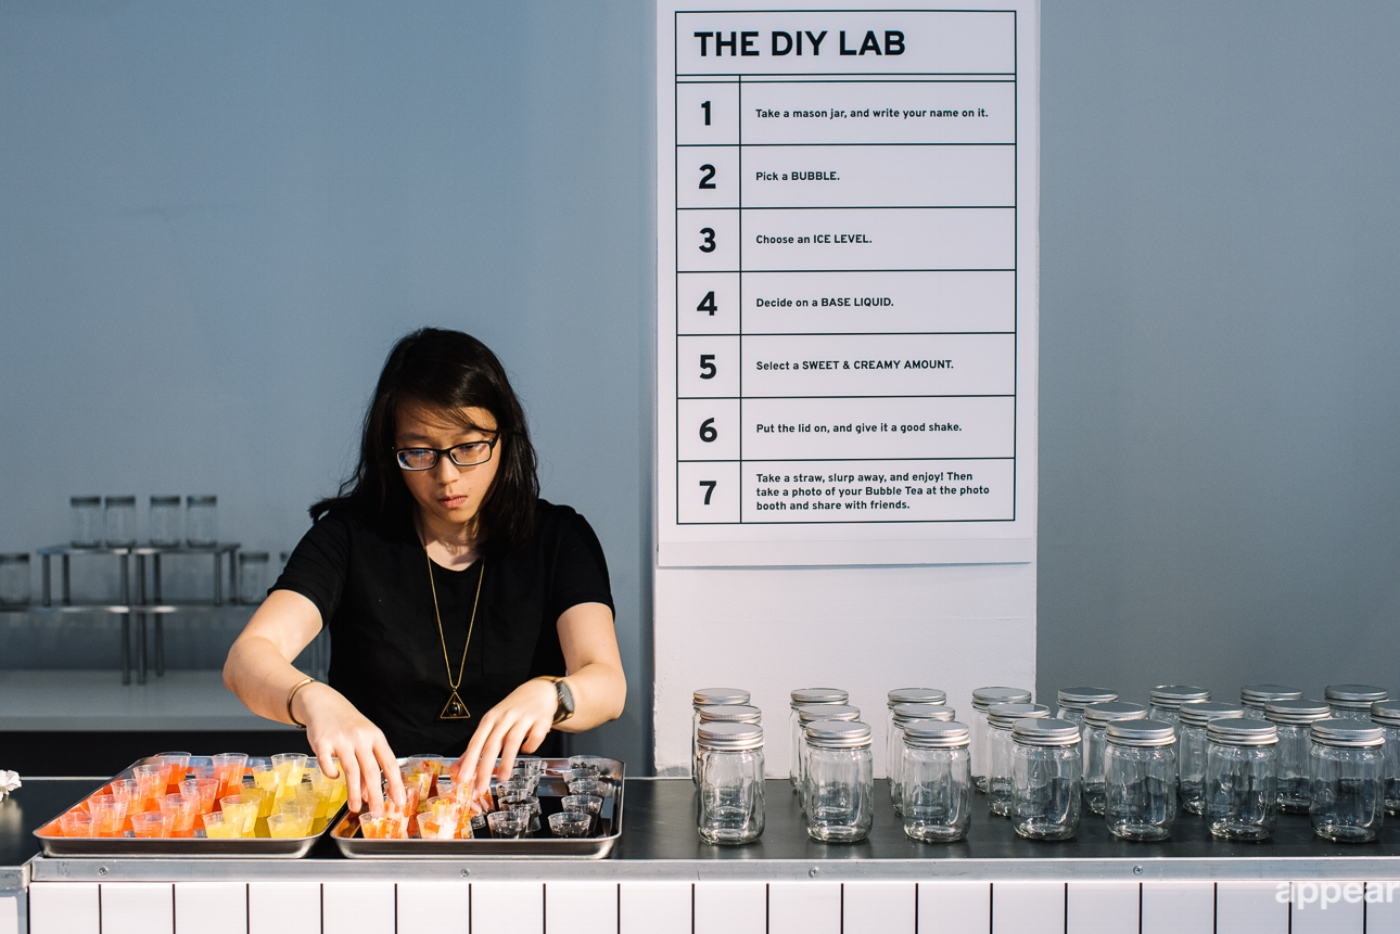 Visitors could make customized bubble tea base on their choices. Photo credit: AppearHere